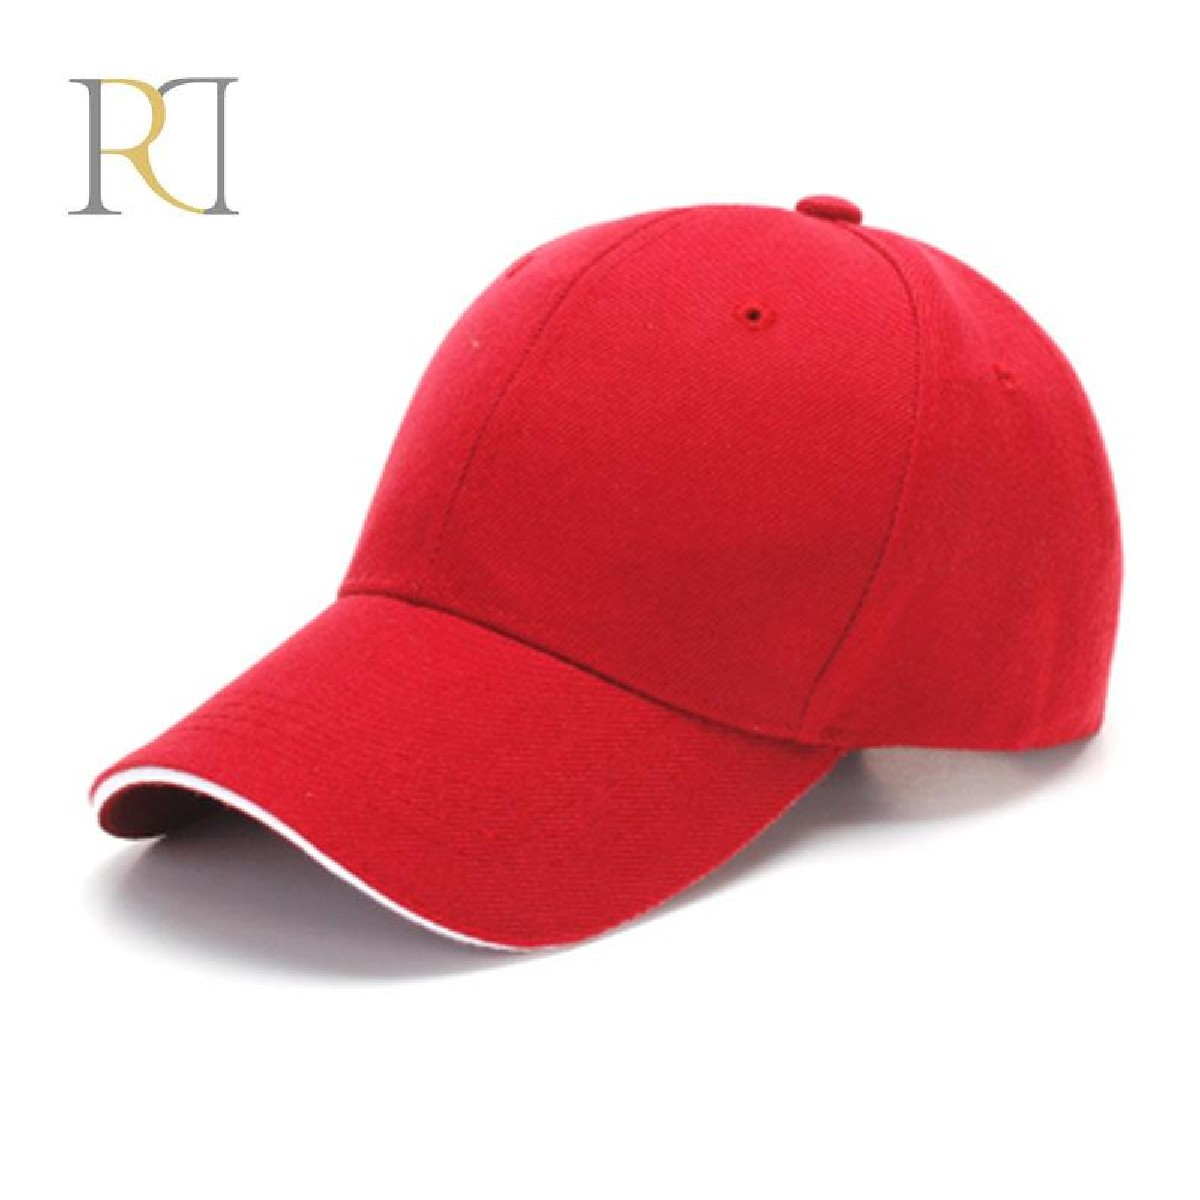 Outdoor Sun Hats New Fashion Baseball Caps for Men and Women Adjustable Caps Sports Style P Caps for Boys